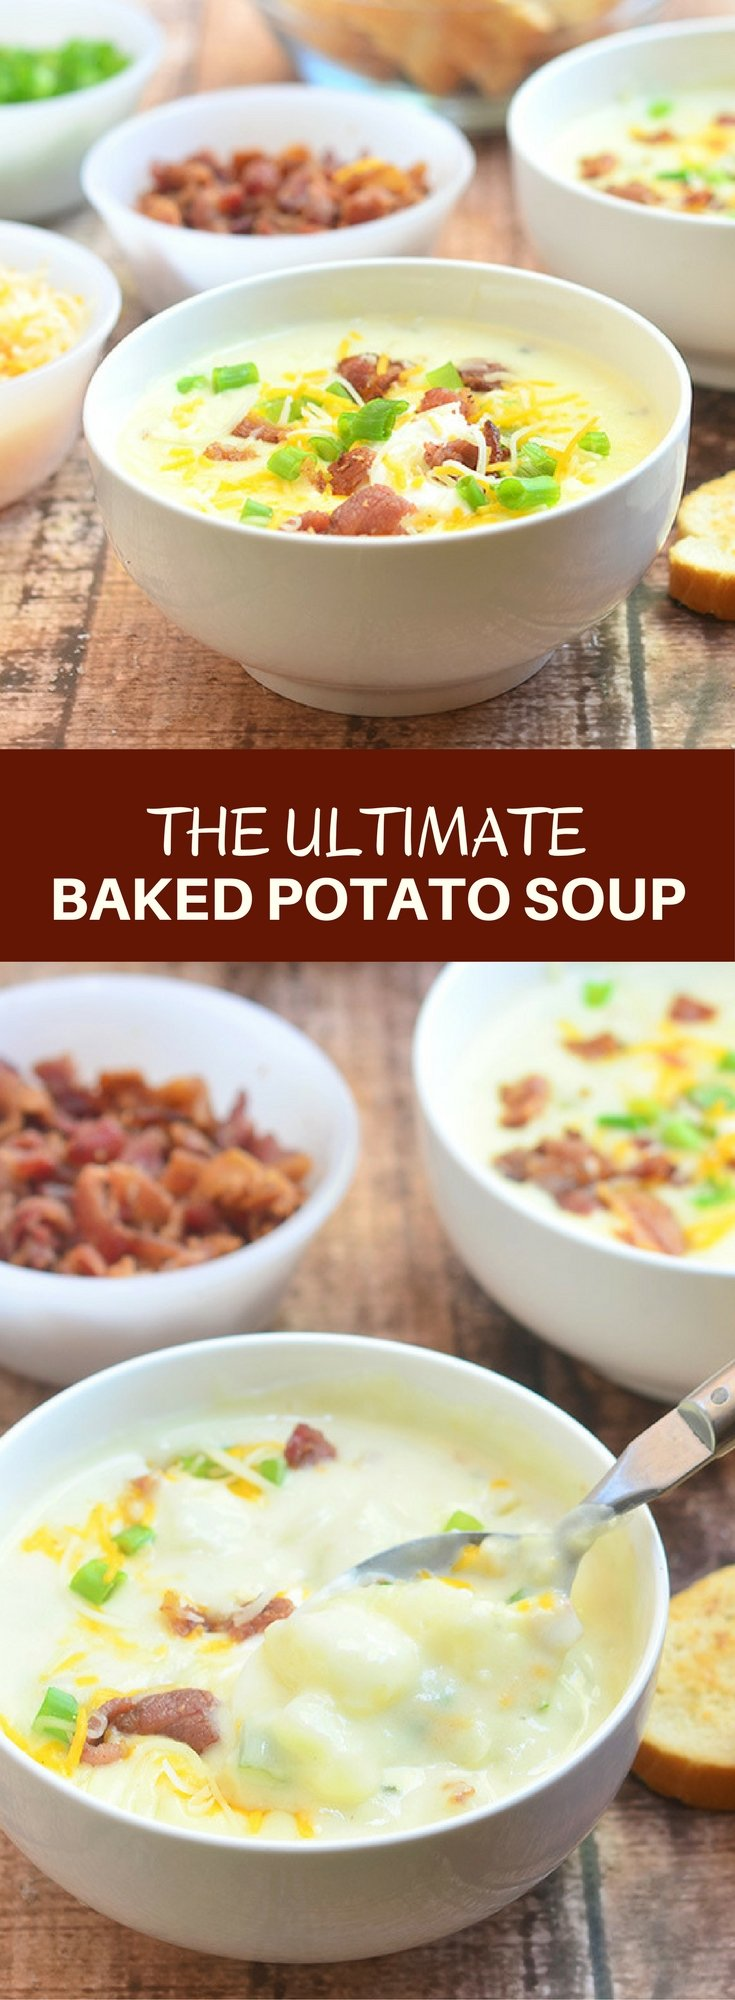 Ultimate Baked Potato Soup loaded with potato chunks, bacon bits, green onions, shredded cheese, and sour cream plus a thick, creamy broth you'd want to dive into! Hearty and delicious, it's the ultimate comfort food!